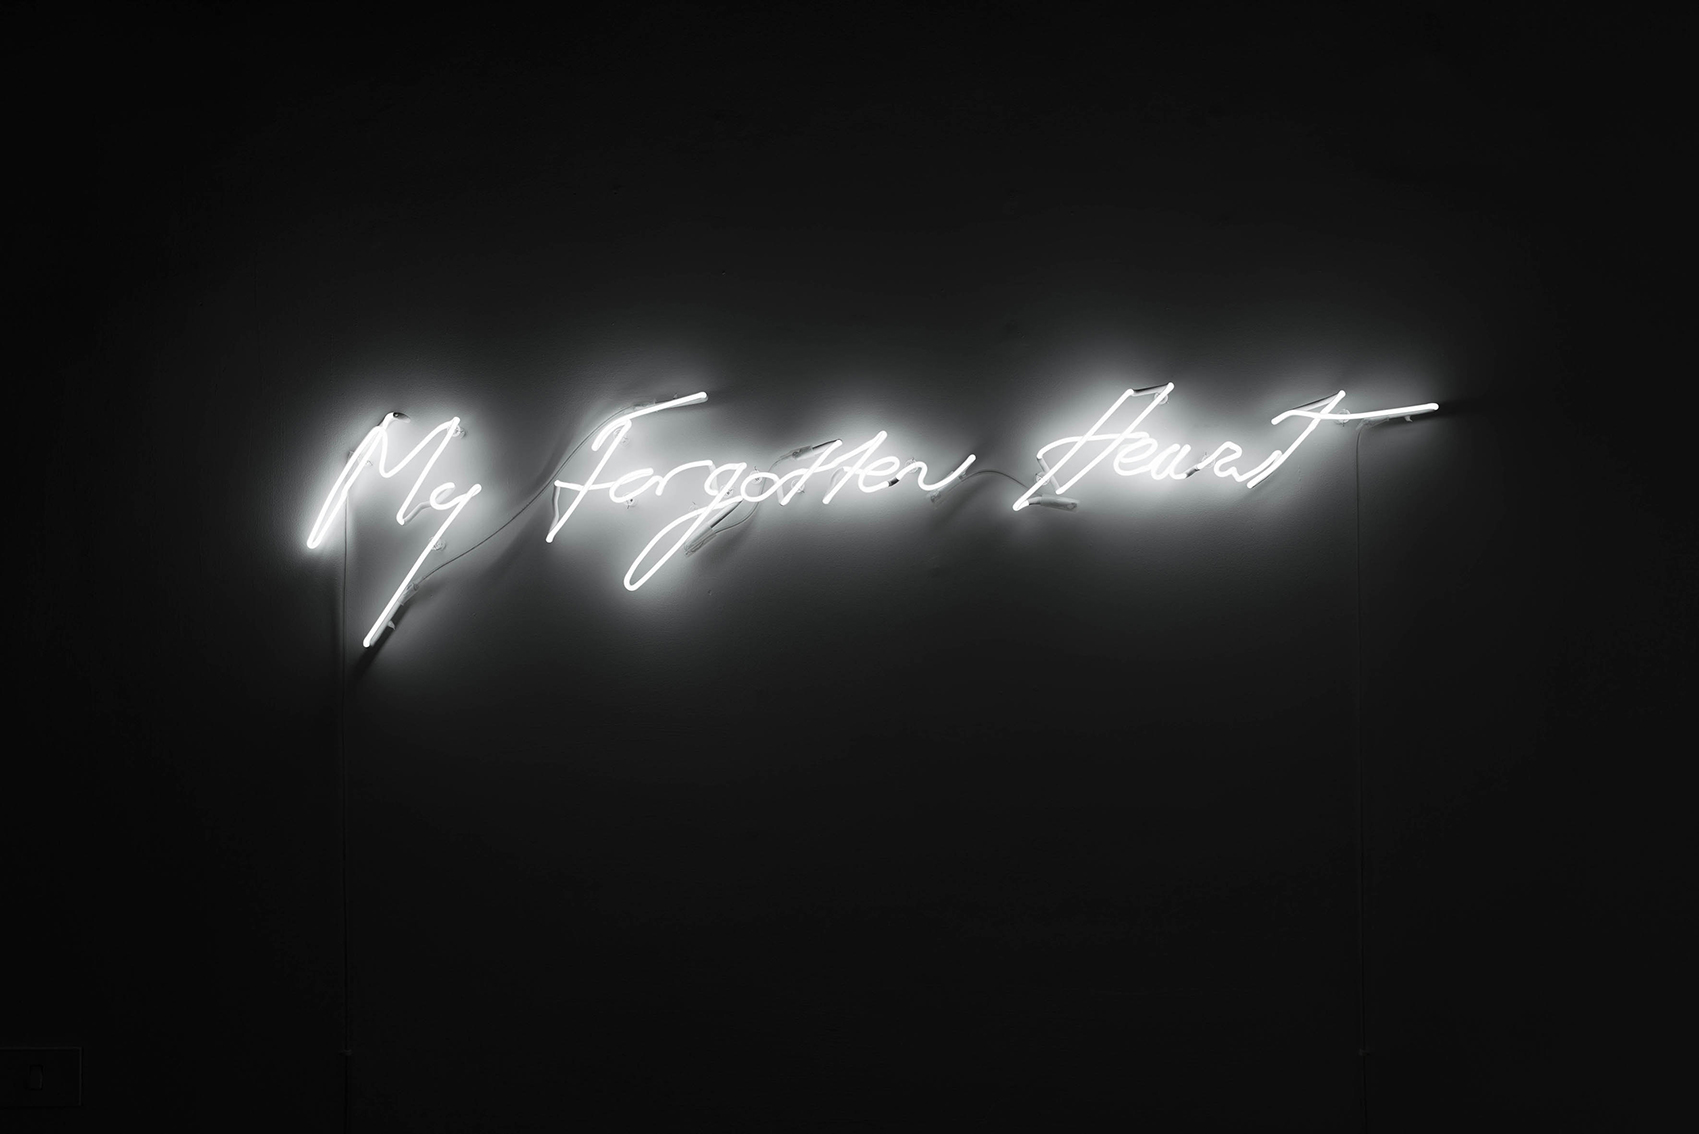 Tracey Emin - My Forgotten Heart.